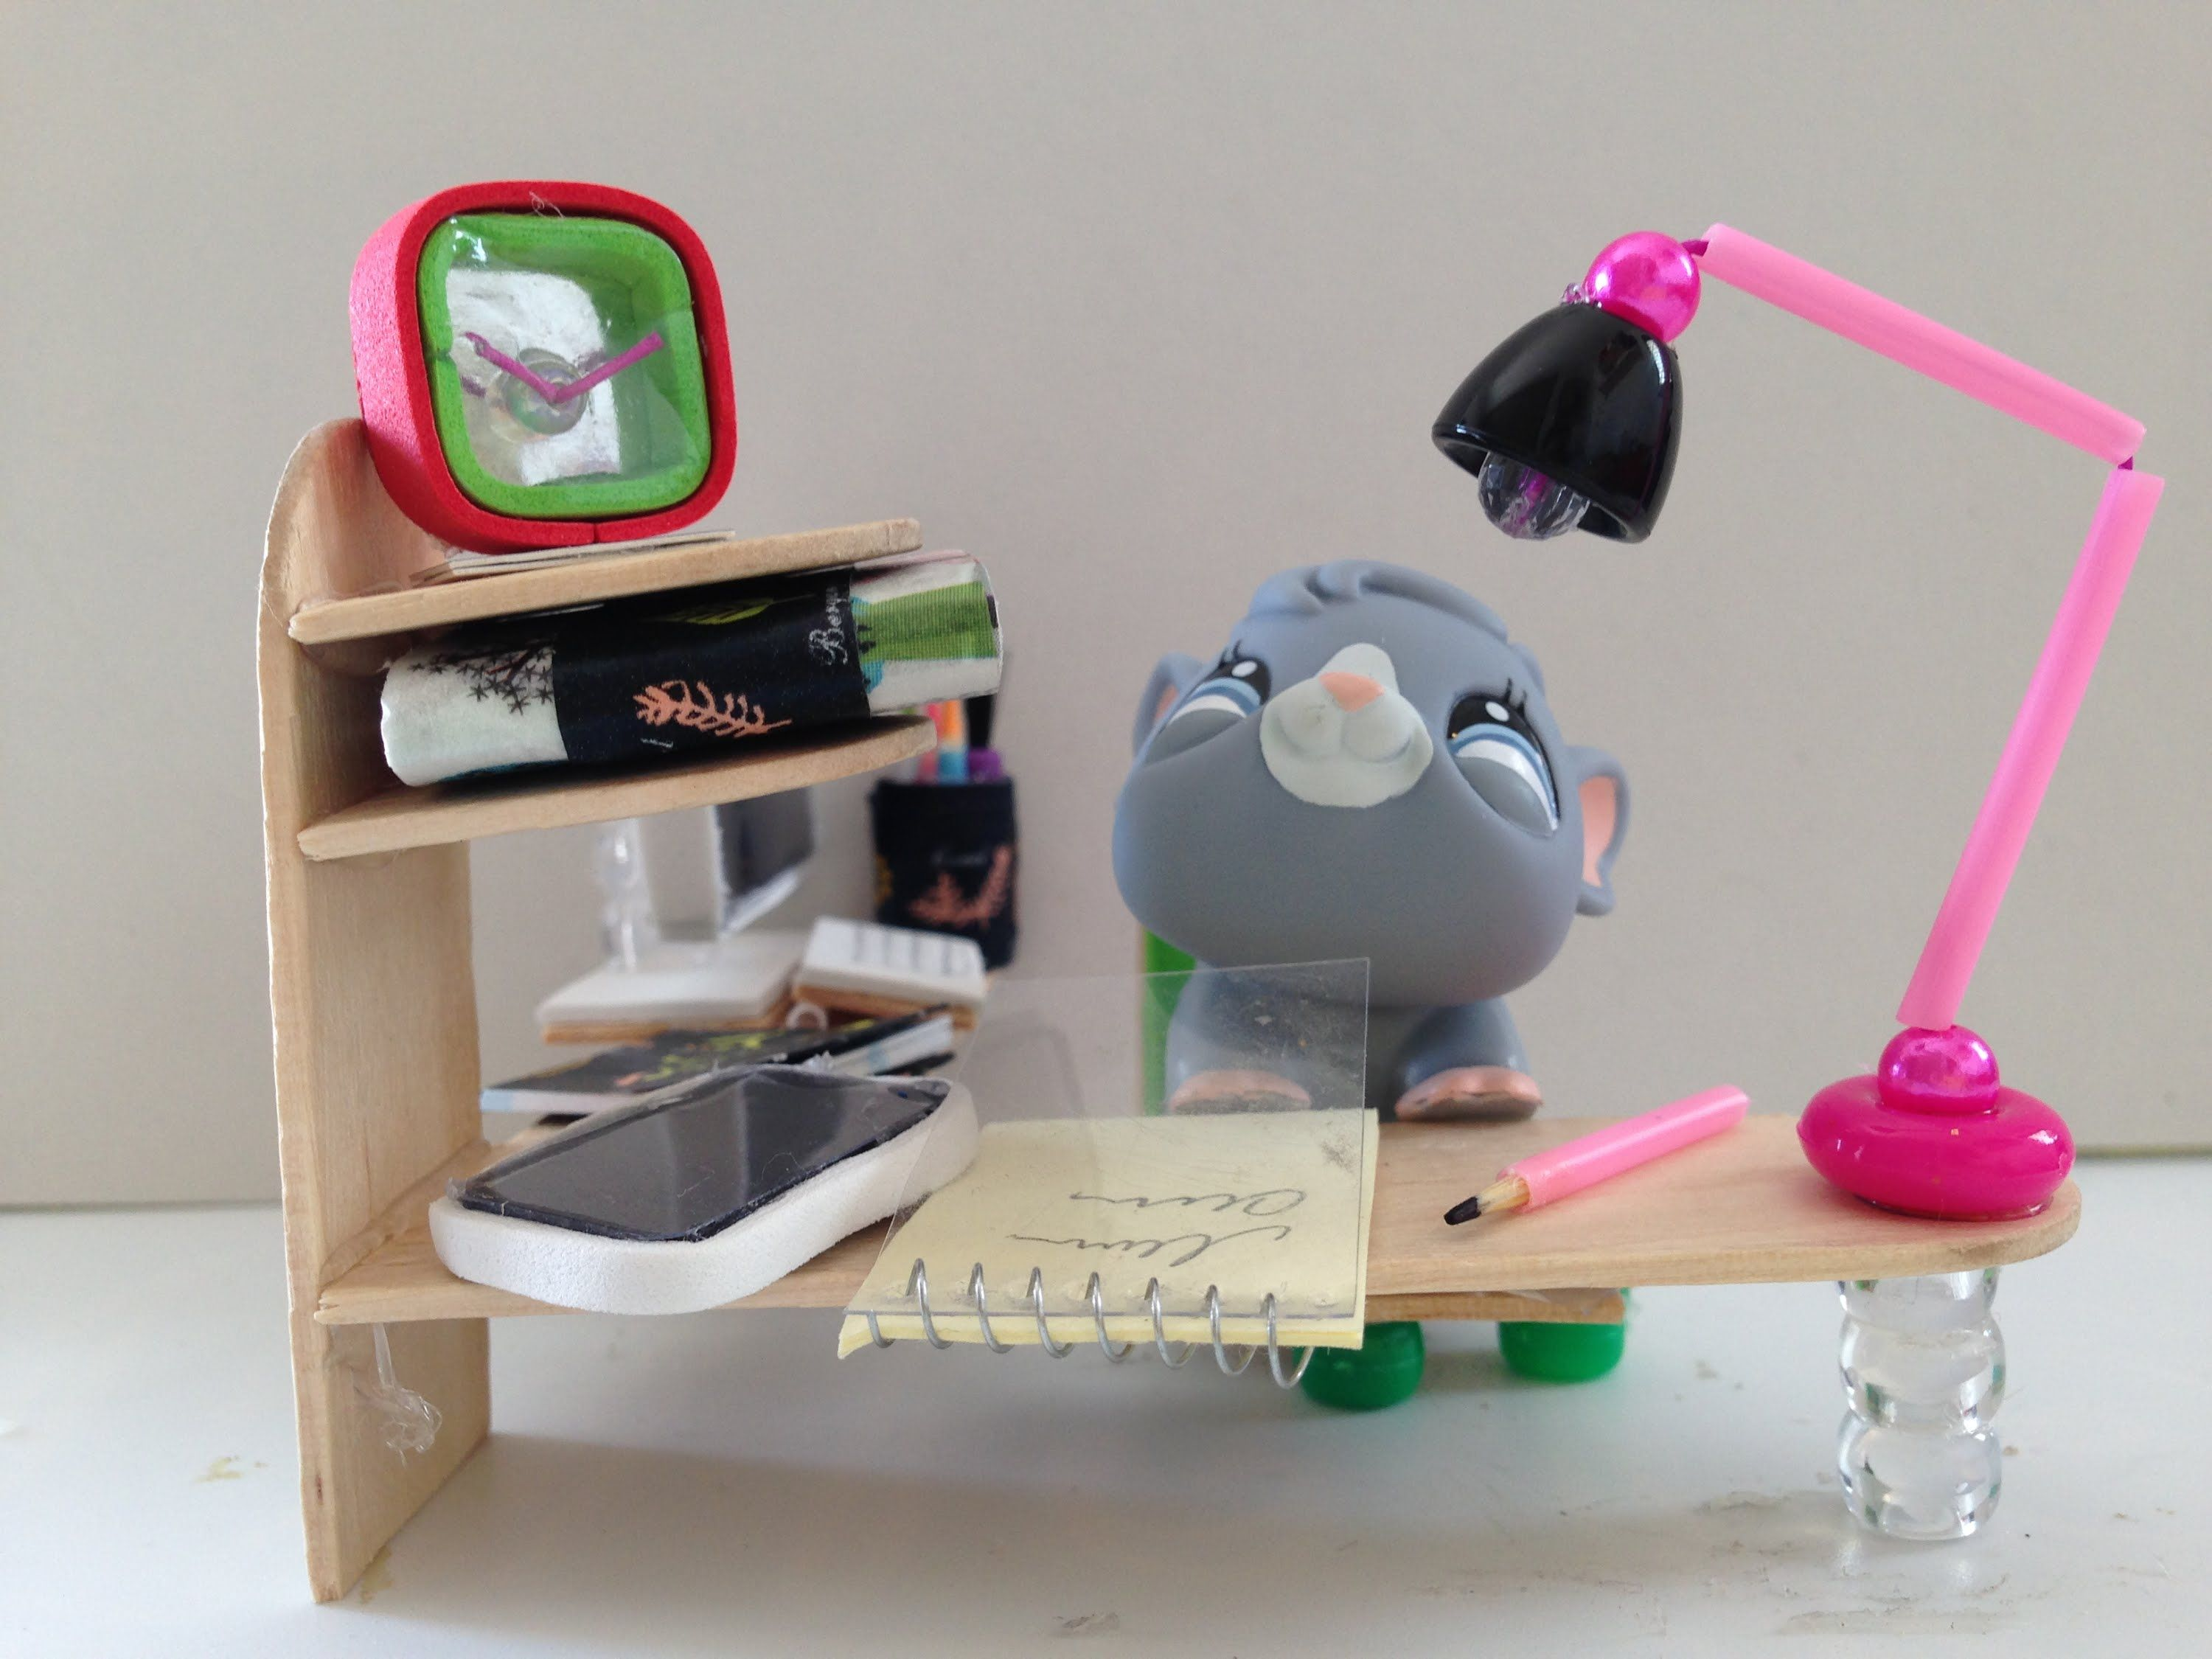 How to make LPS accessories: a LPS desk lamp | diy mini ...